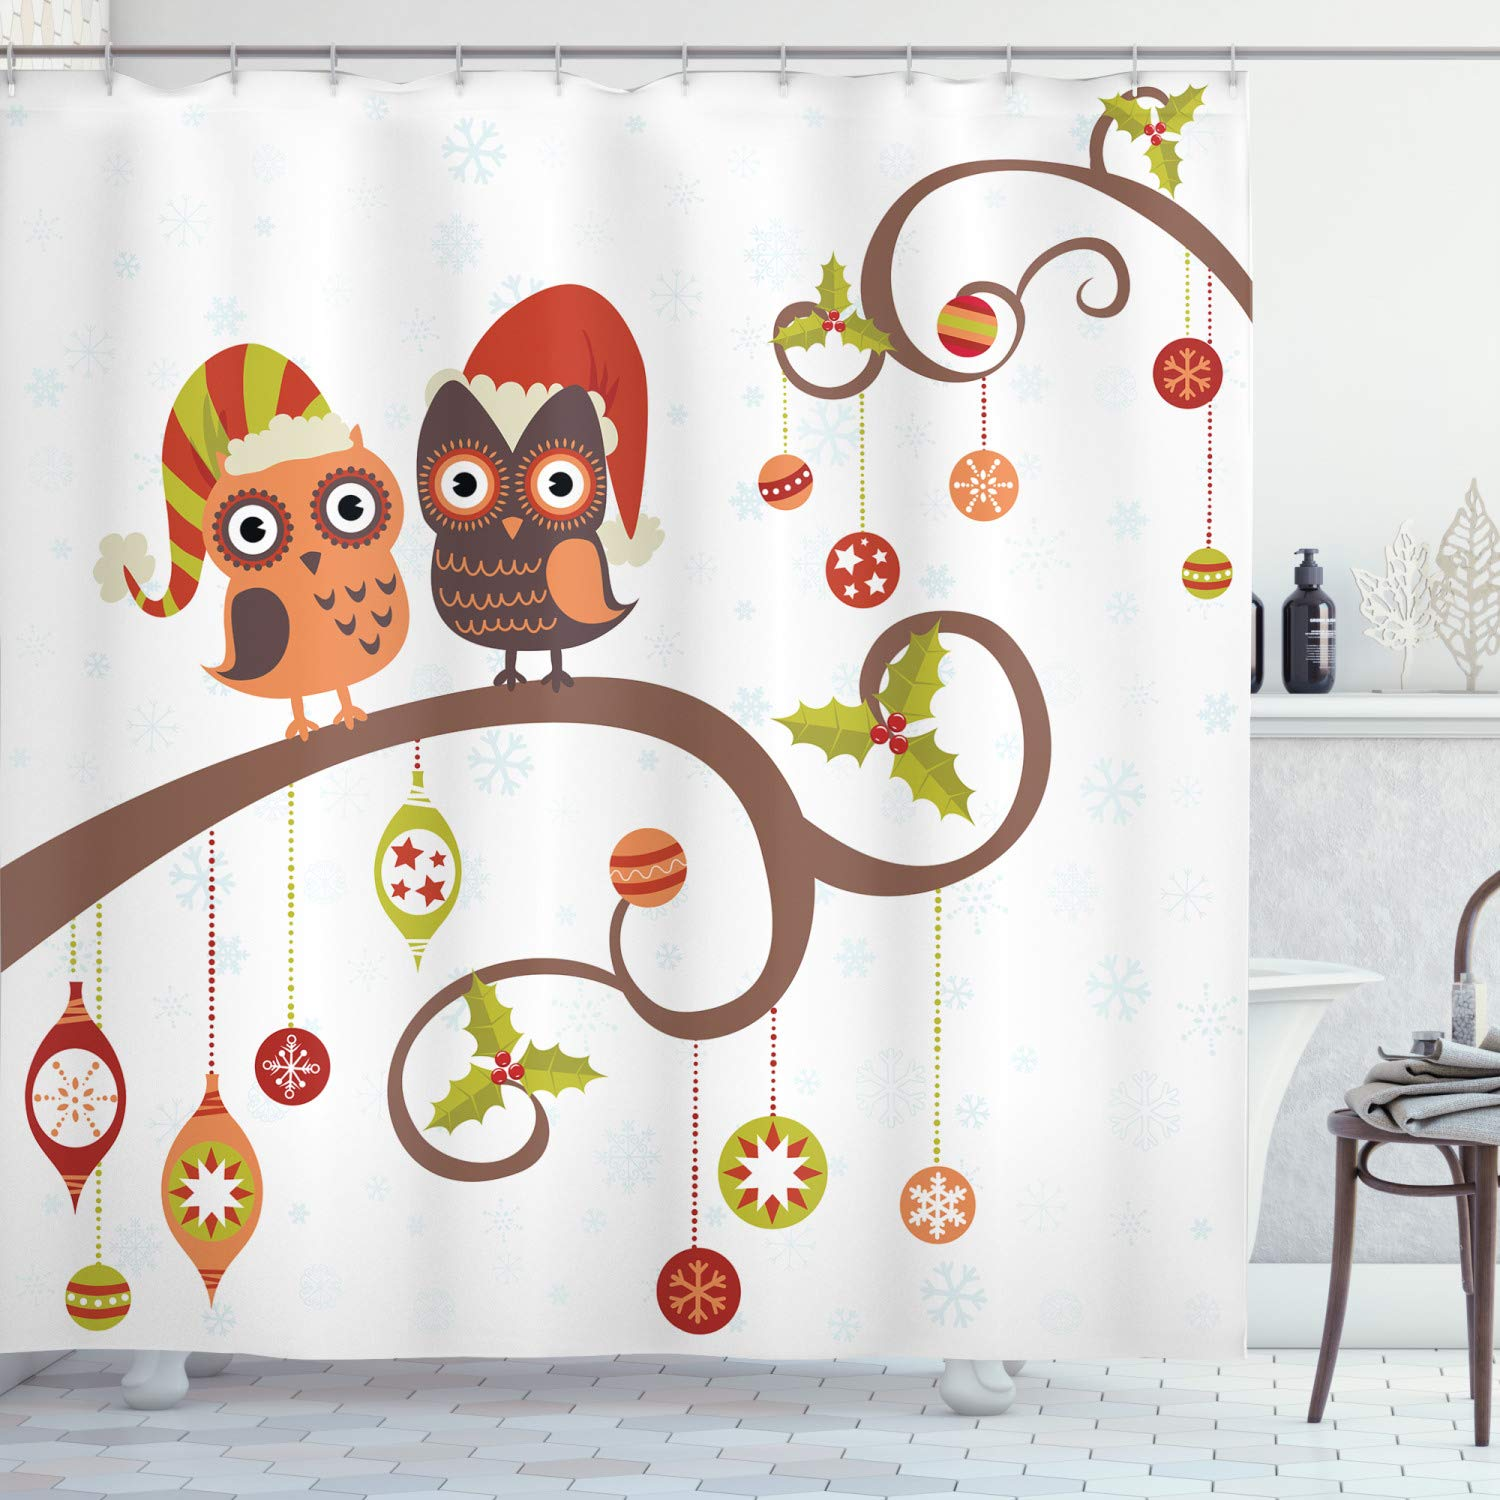 "Ambesonne Christmas Shower Curtain, Owls on Celebrating Twiggy Tree Branches Annual Yule Noel Christmas Themed Print, Cloth Fabric Bathroom Decor Set with Hooks, 75"" Long, Grey Brown"